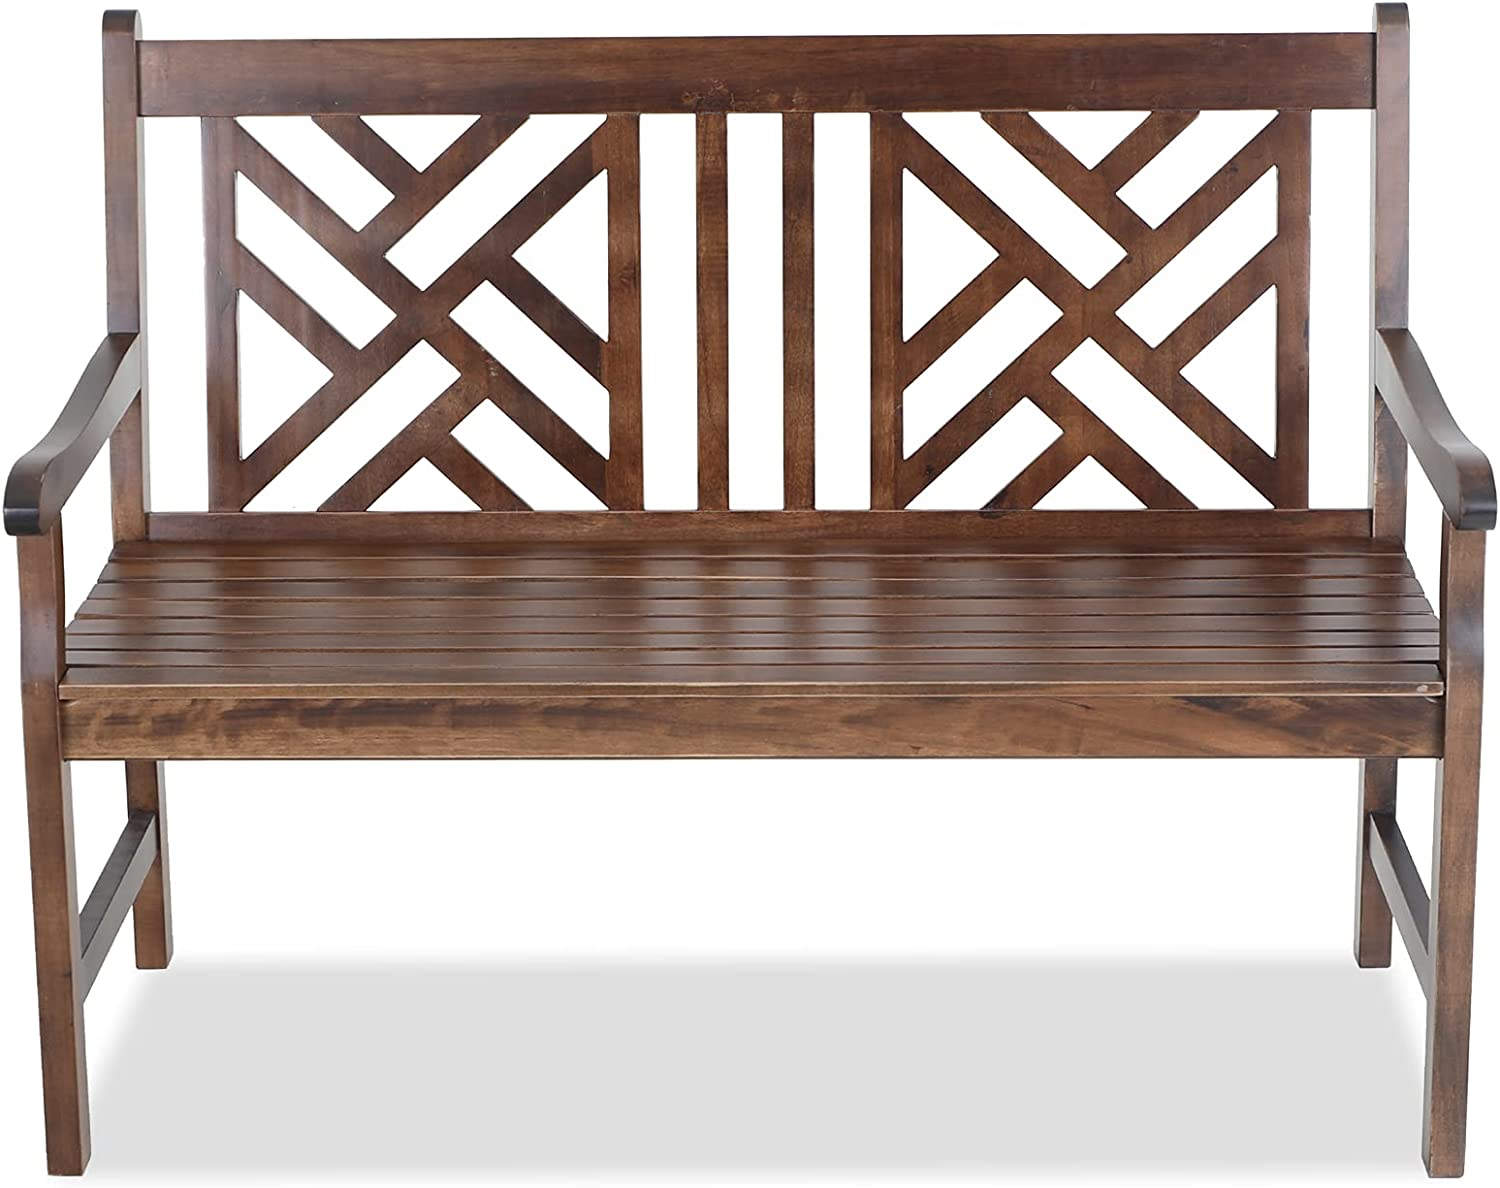 MFSTUDIO Outdoor Acacia Wood Garden Bench with Backrest and Armrest,2-Person Slatted Seat Bench Patio Furniture for Porch,Park,Yard,Weight Capacity 600 lbs(Brown)